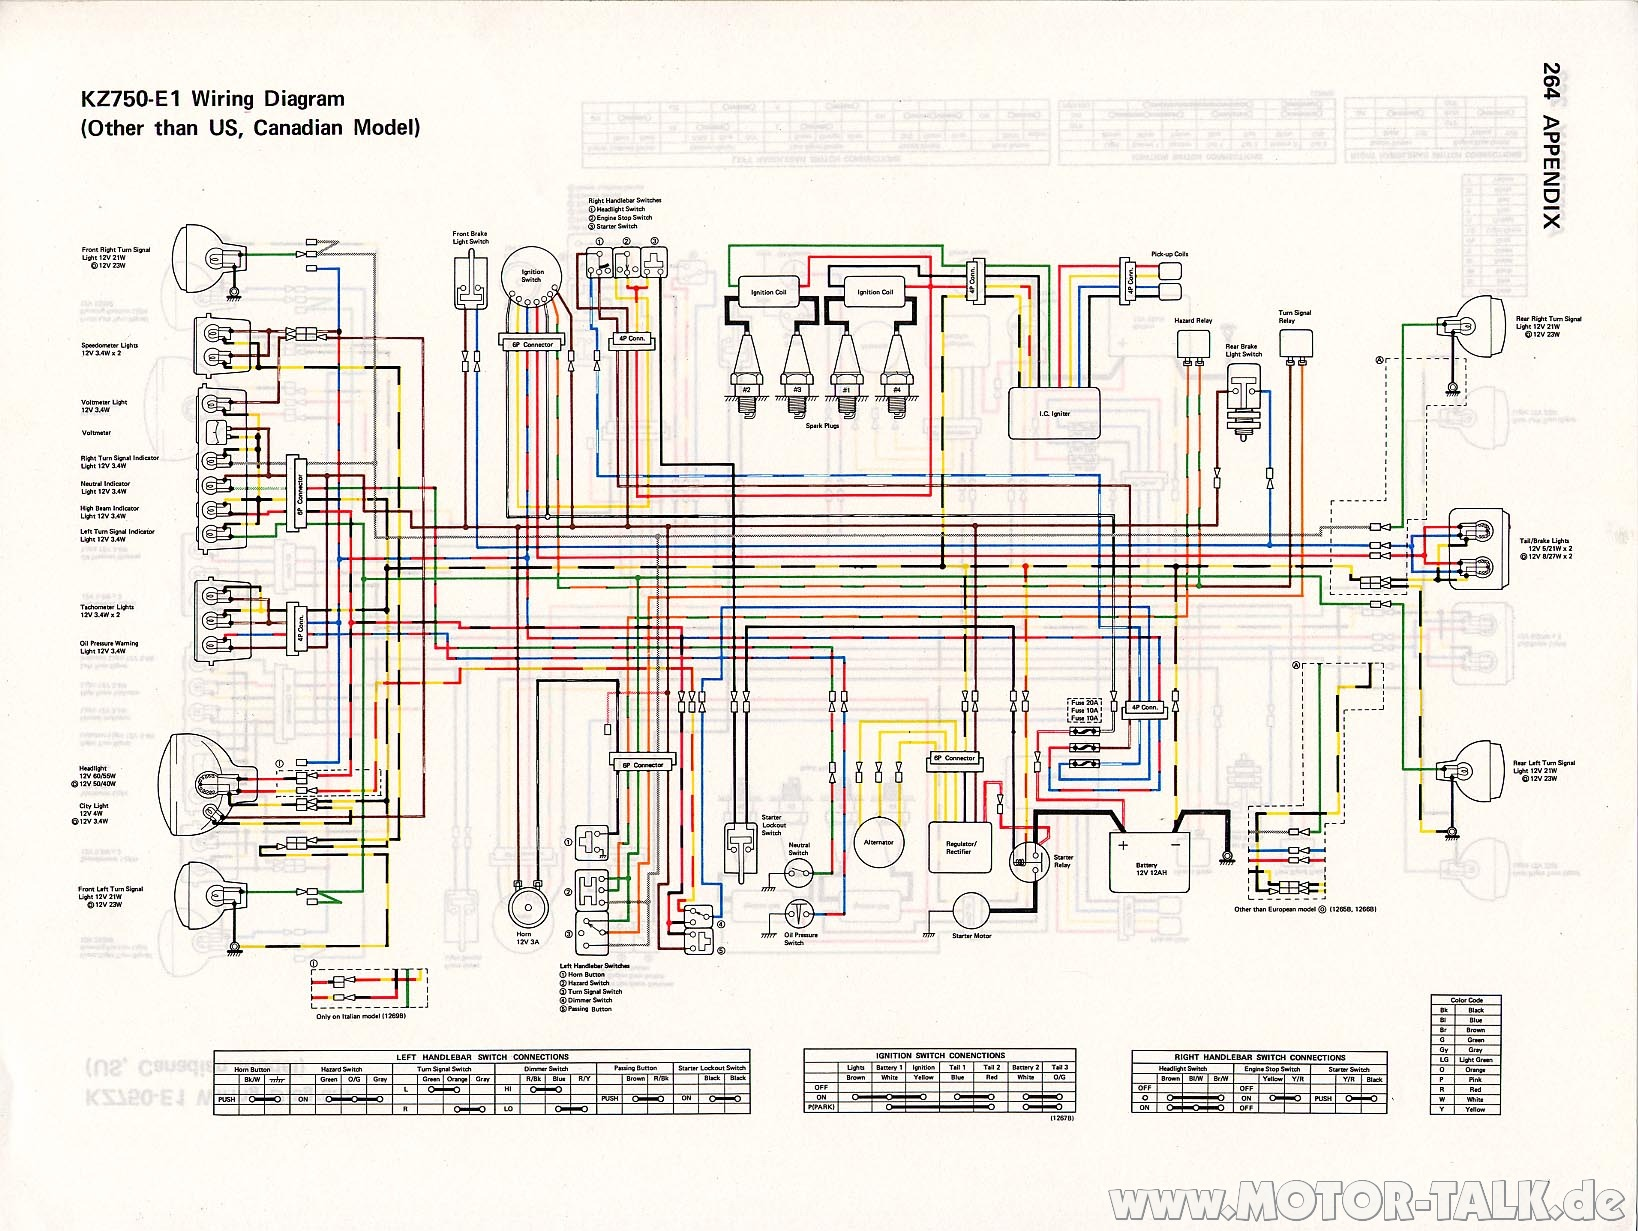 75 Kawasaki Z1 Wiring Diagram likewise Wiring additionally Yamaha 110cc 4 Wheeler Wiring Diagram as well Cb 750 as well 89082 Honda Cb 125 K5 Restauration. on 1980 honda cb750 wiring diagram